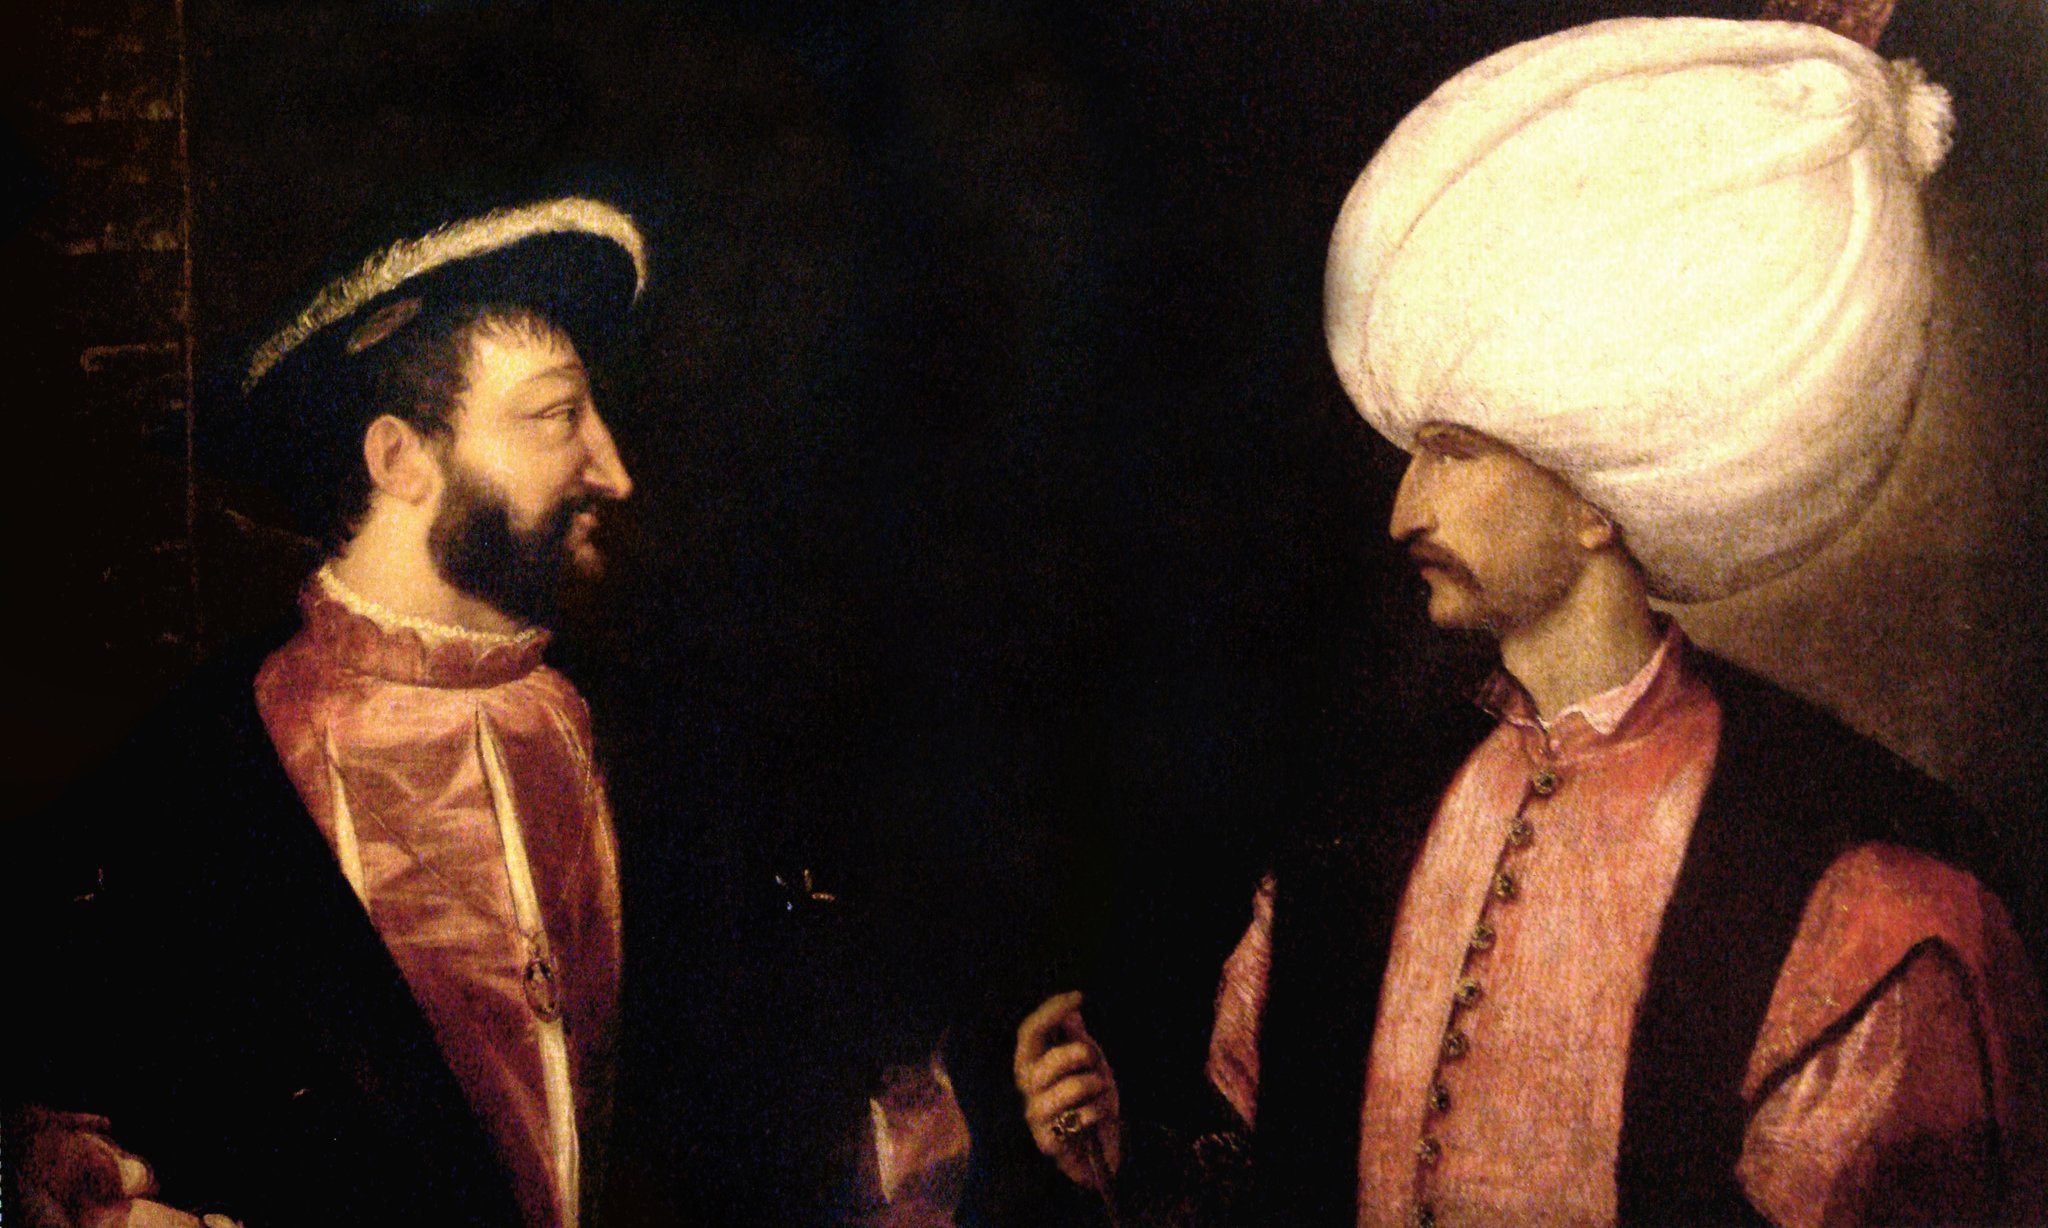 Search for Suleiman's heart leads to big find in Hungary